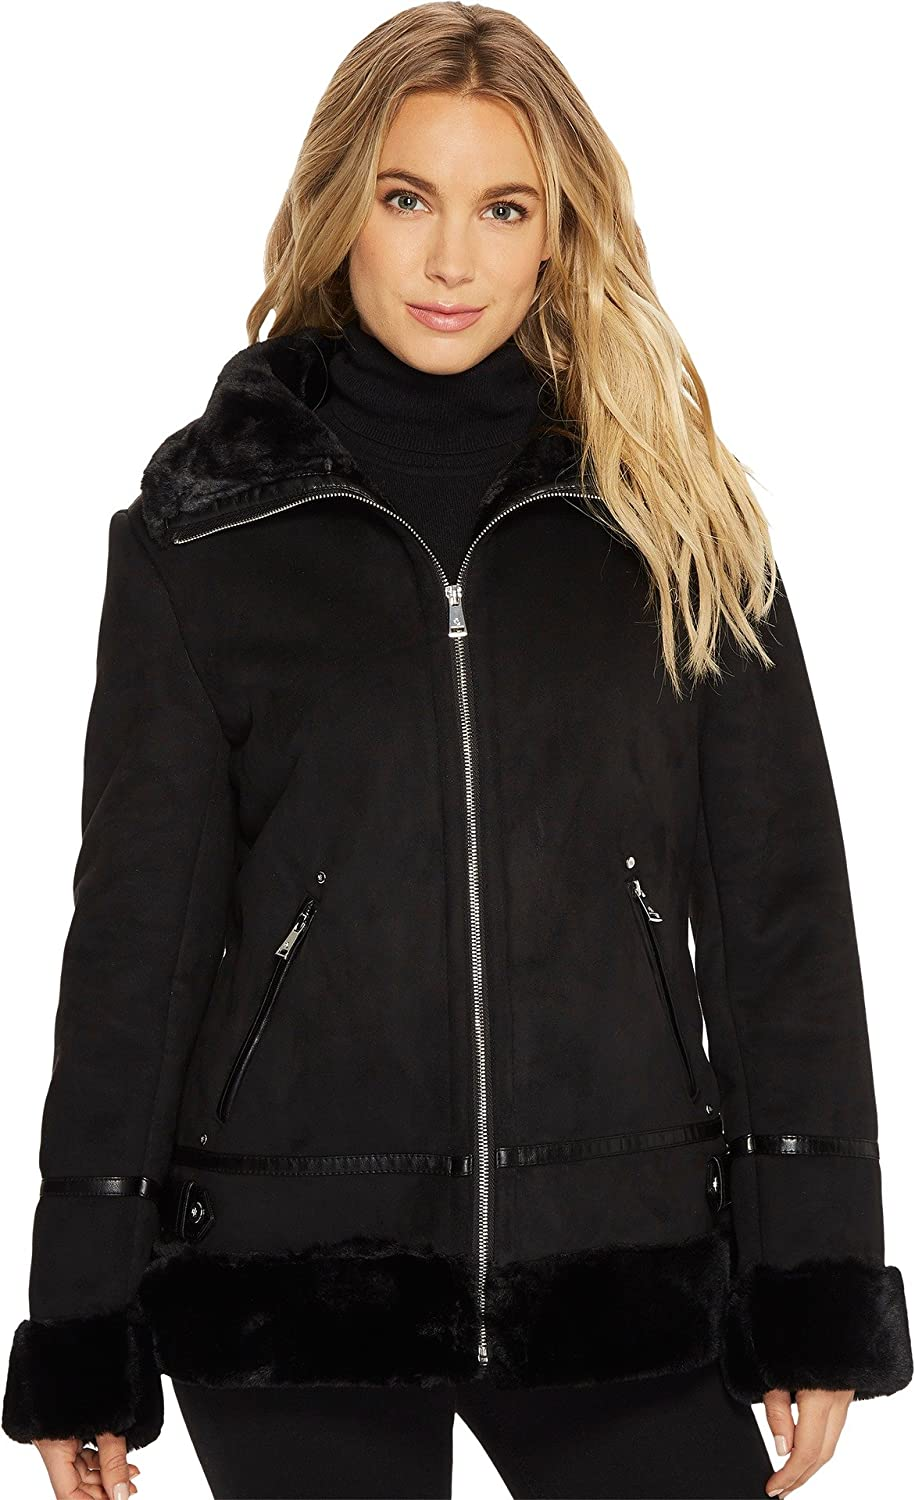 ad008b0e Imported LAUREN Ralph Lauren Outerwear Size Chart It can be chilly at the  top. Keep warm in the elevated style of the LAUREN Ralph Lauren® Faux  Shearling ...